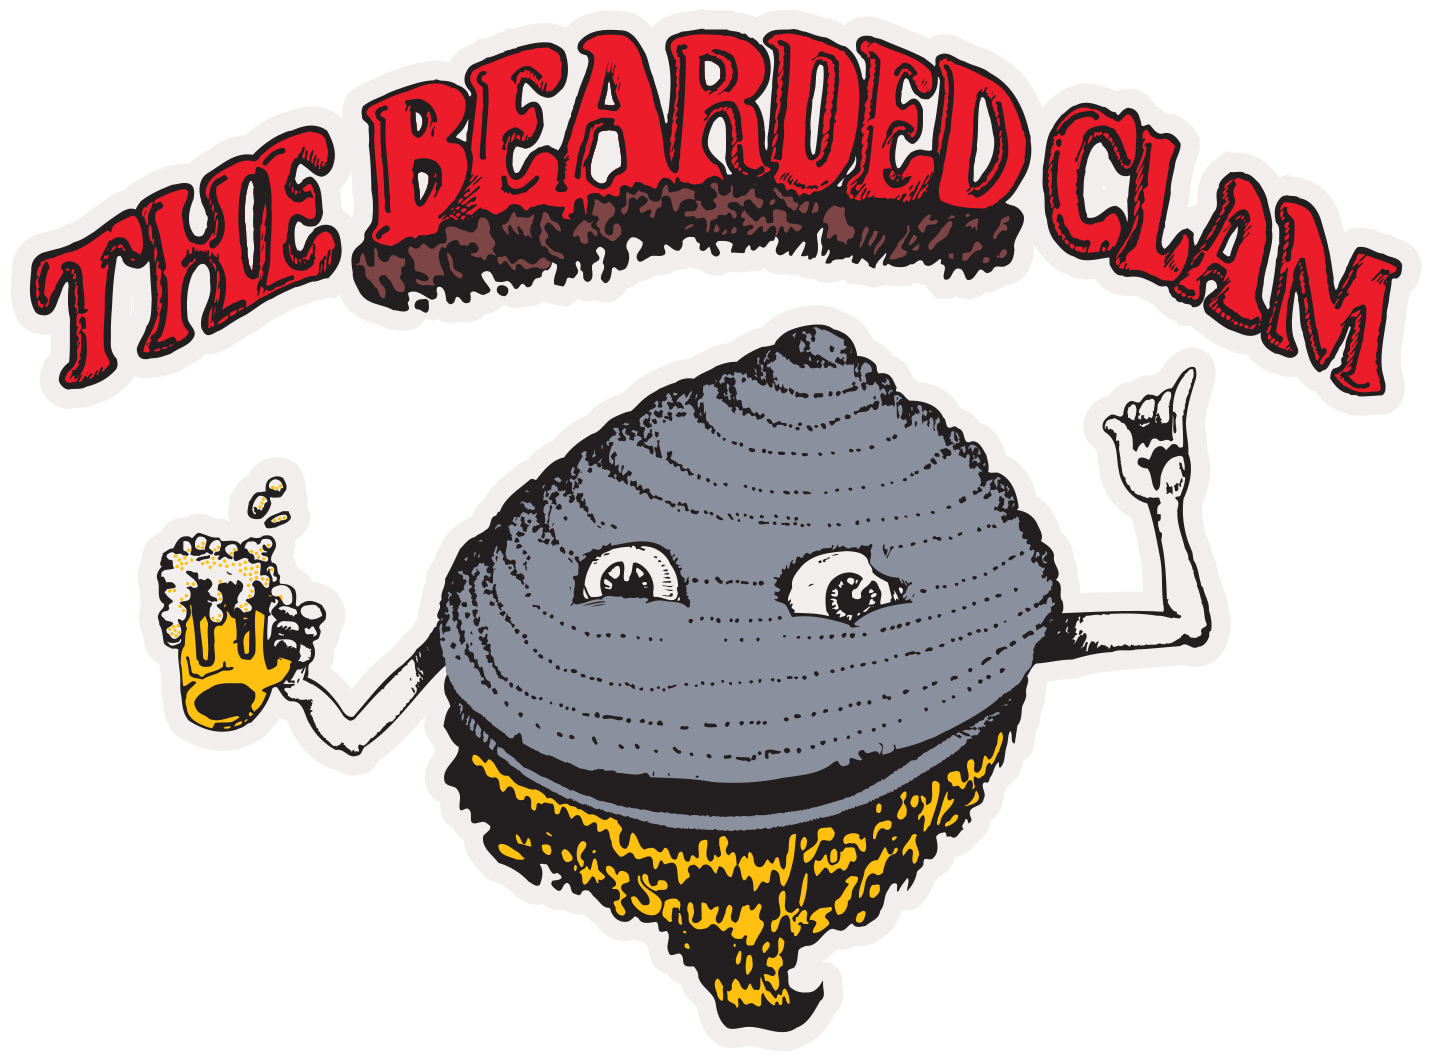 The Bearded Clam